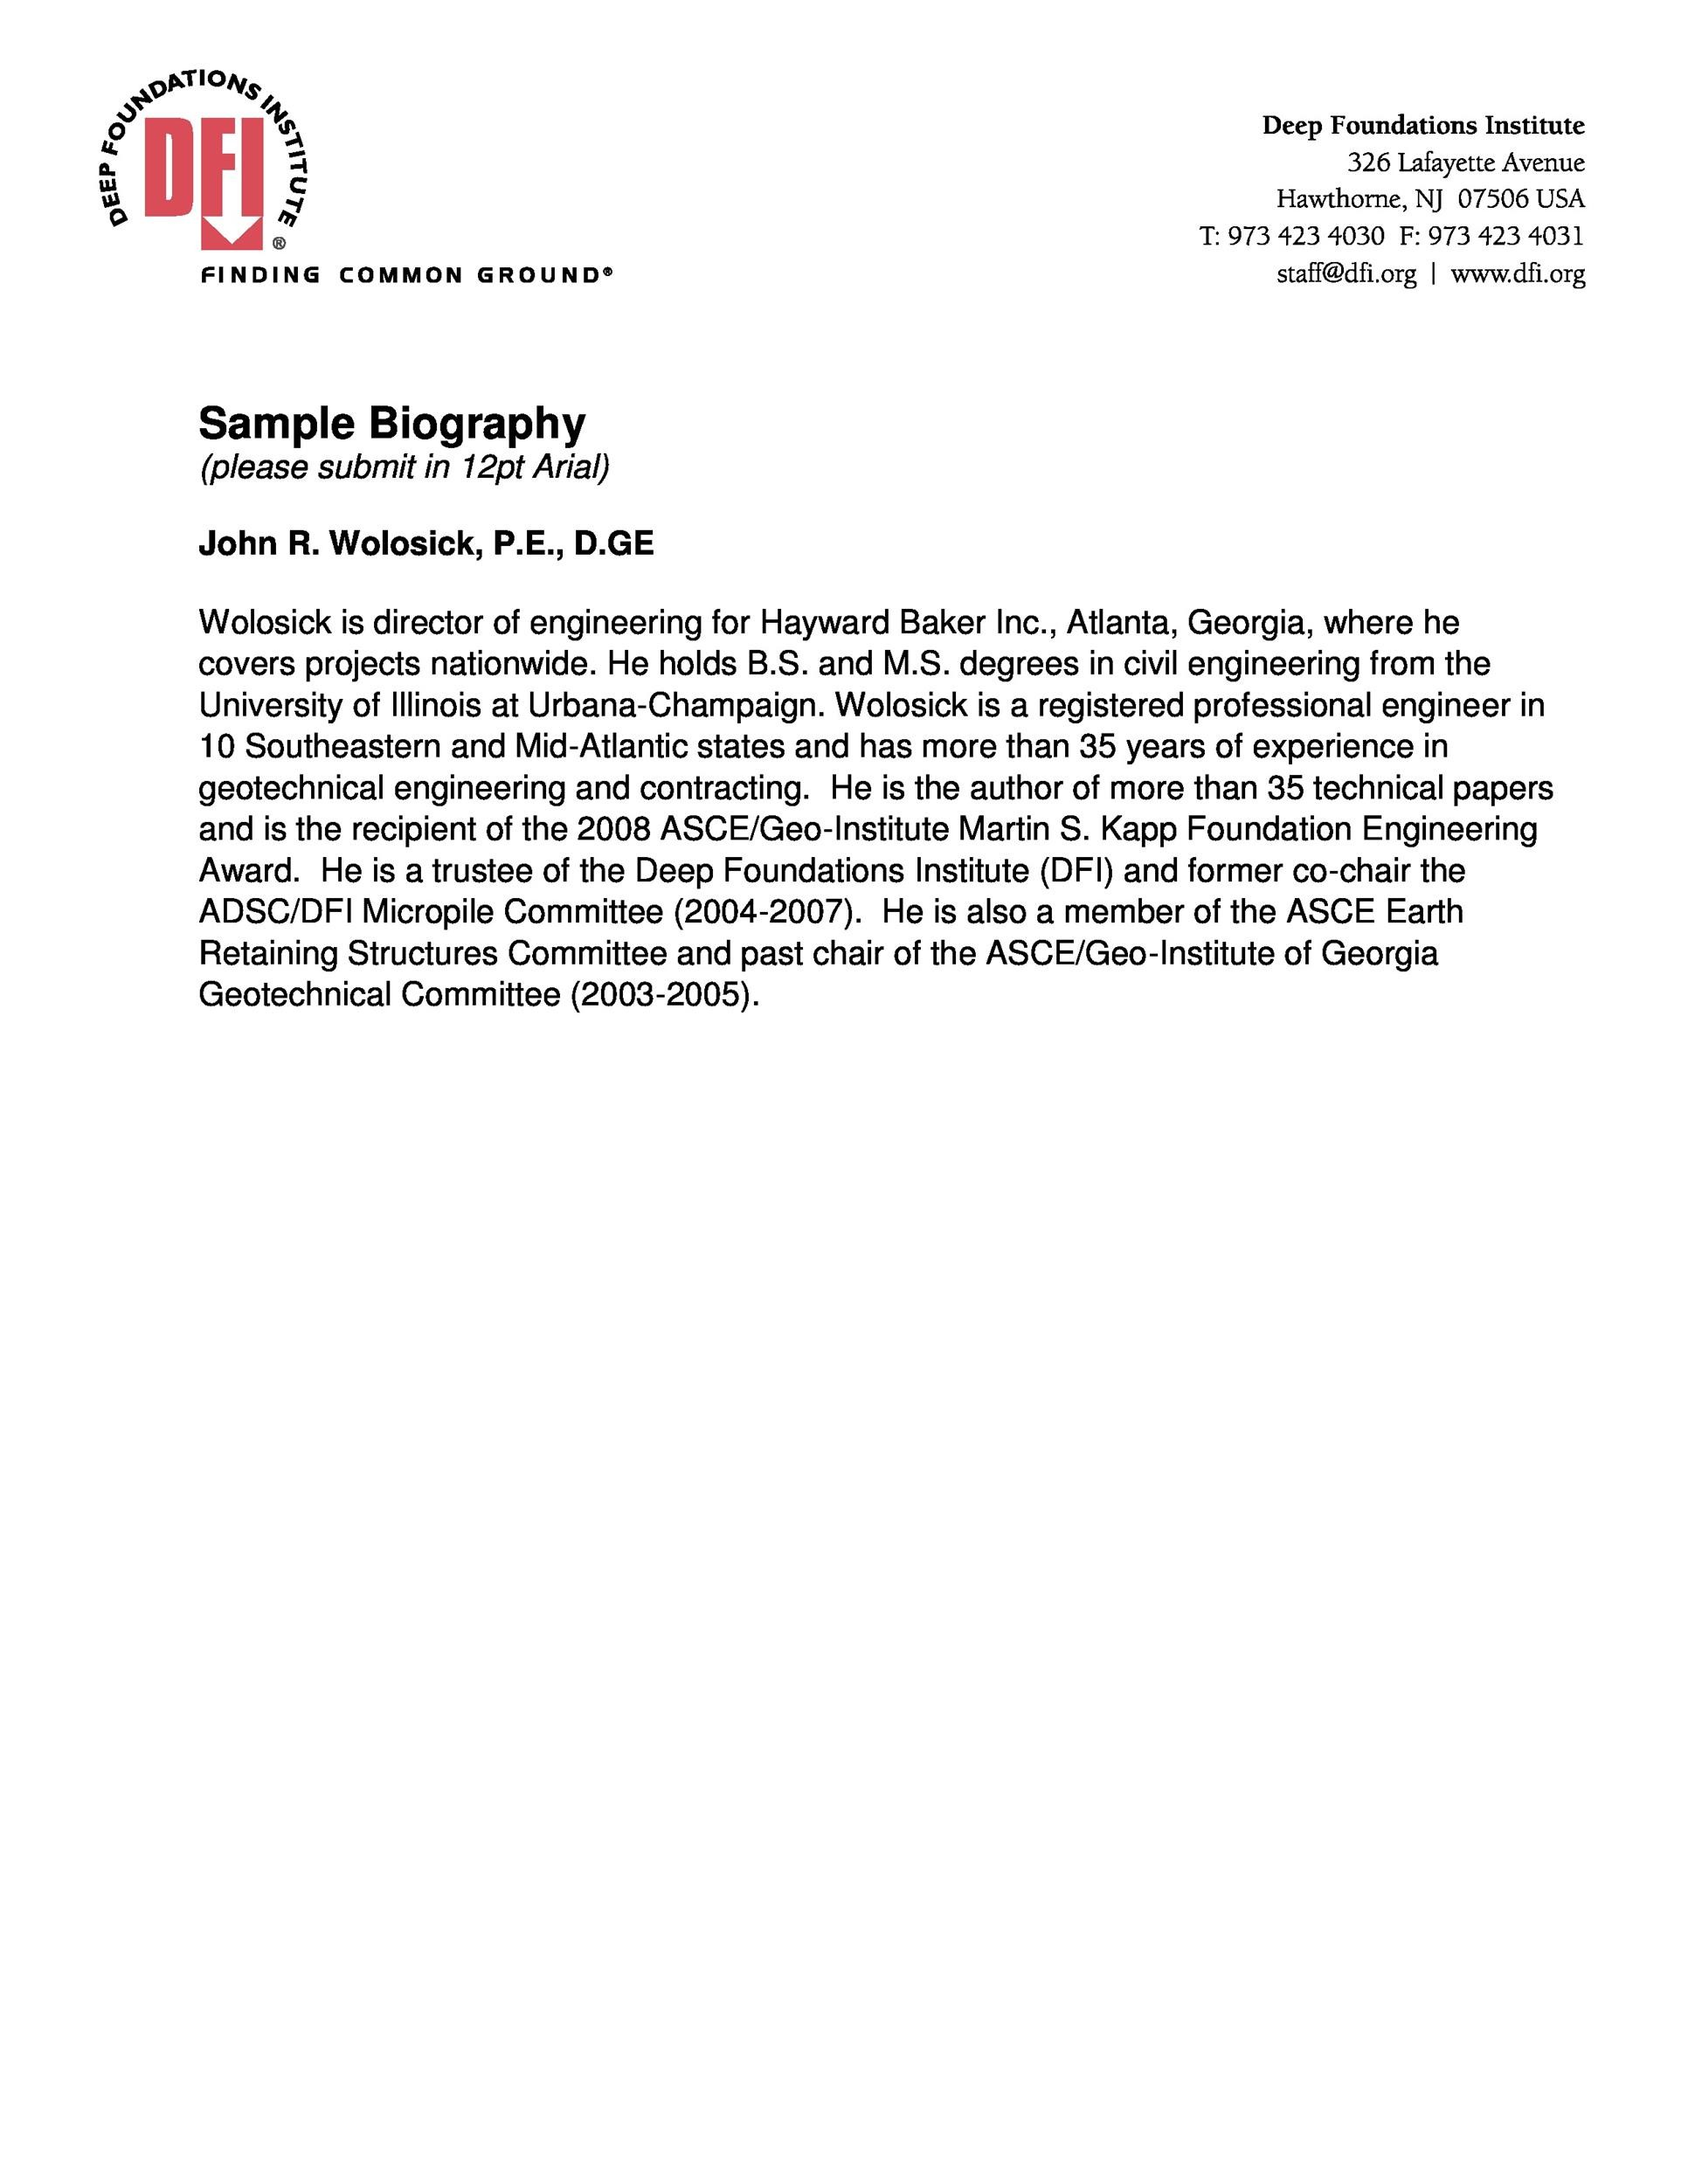 a biography sample essay